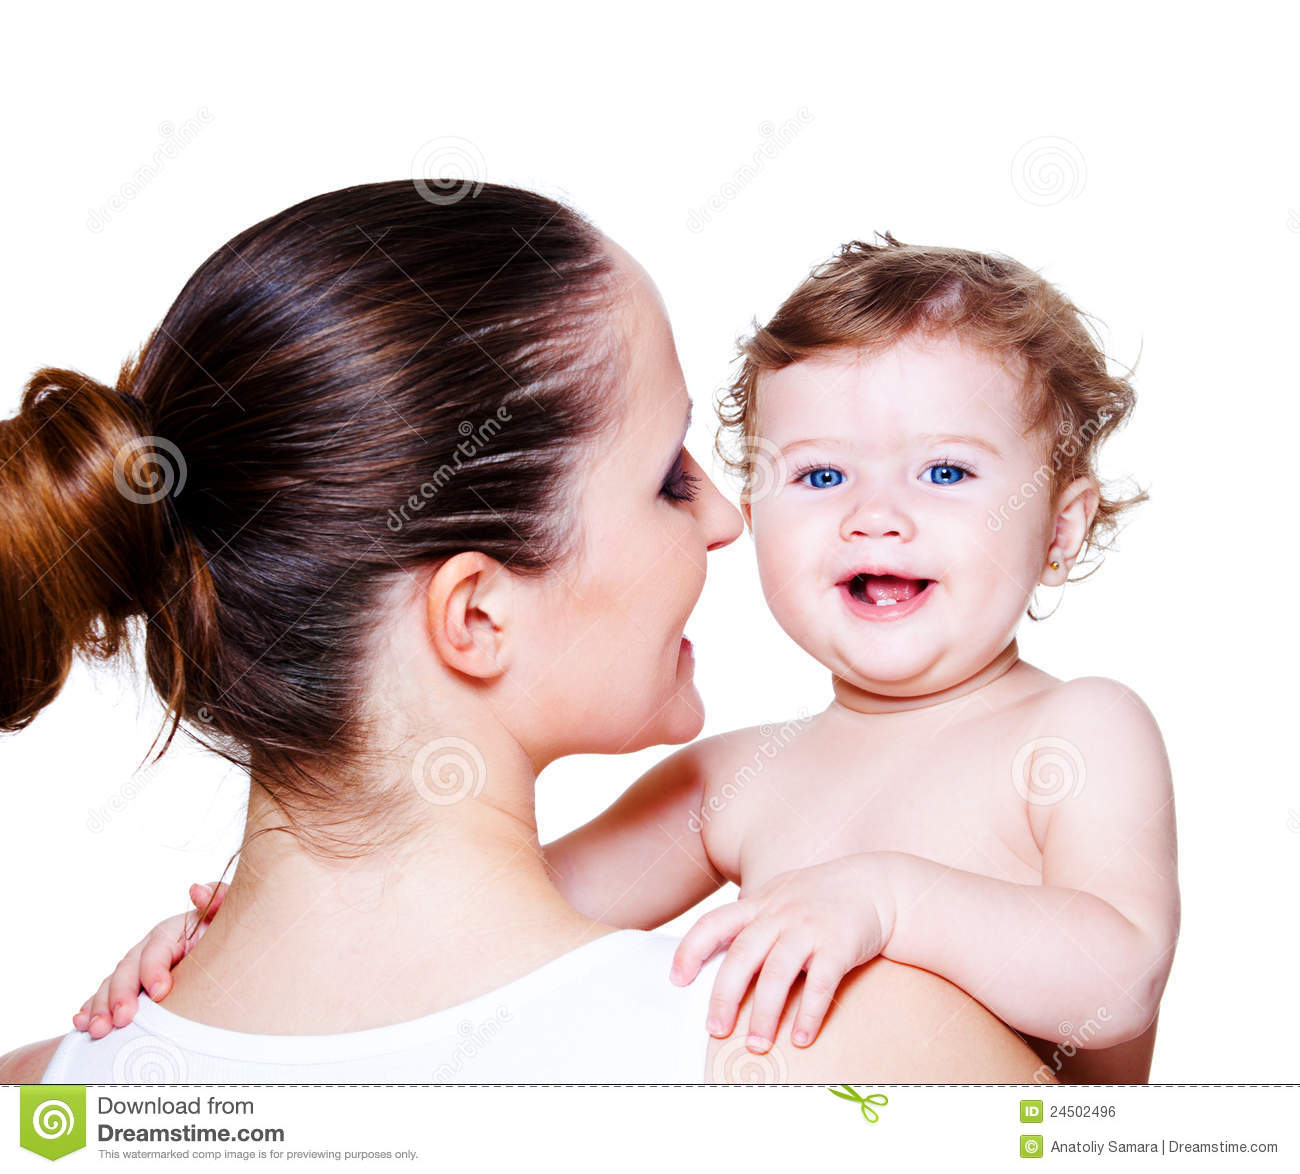 Woman Holding Baby Royalty Free Stock Image - Image: 24502496